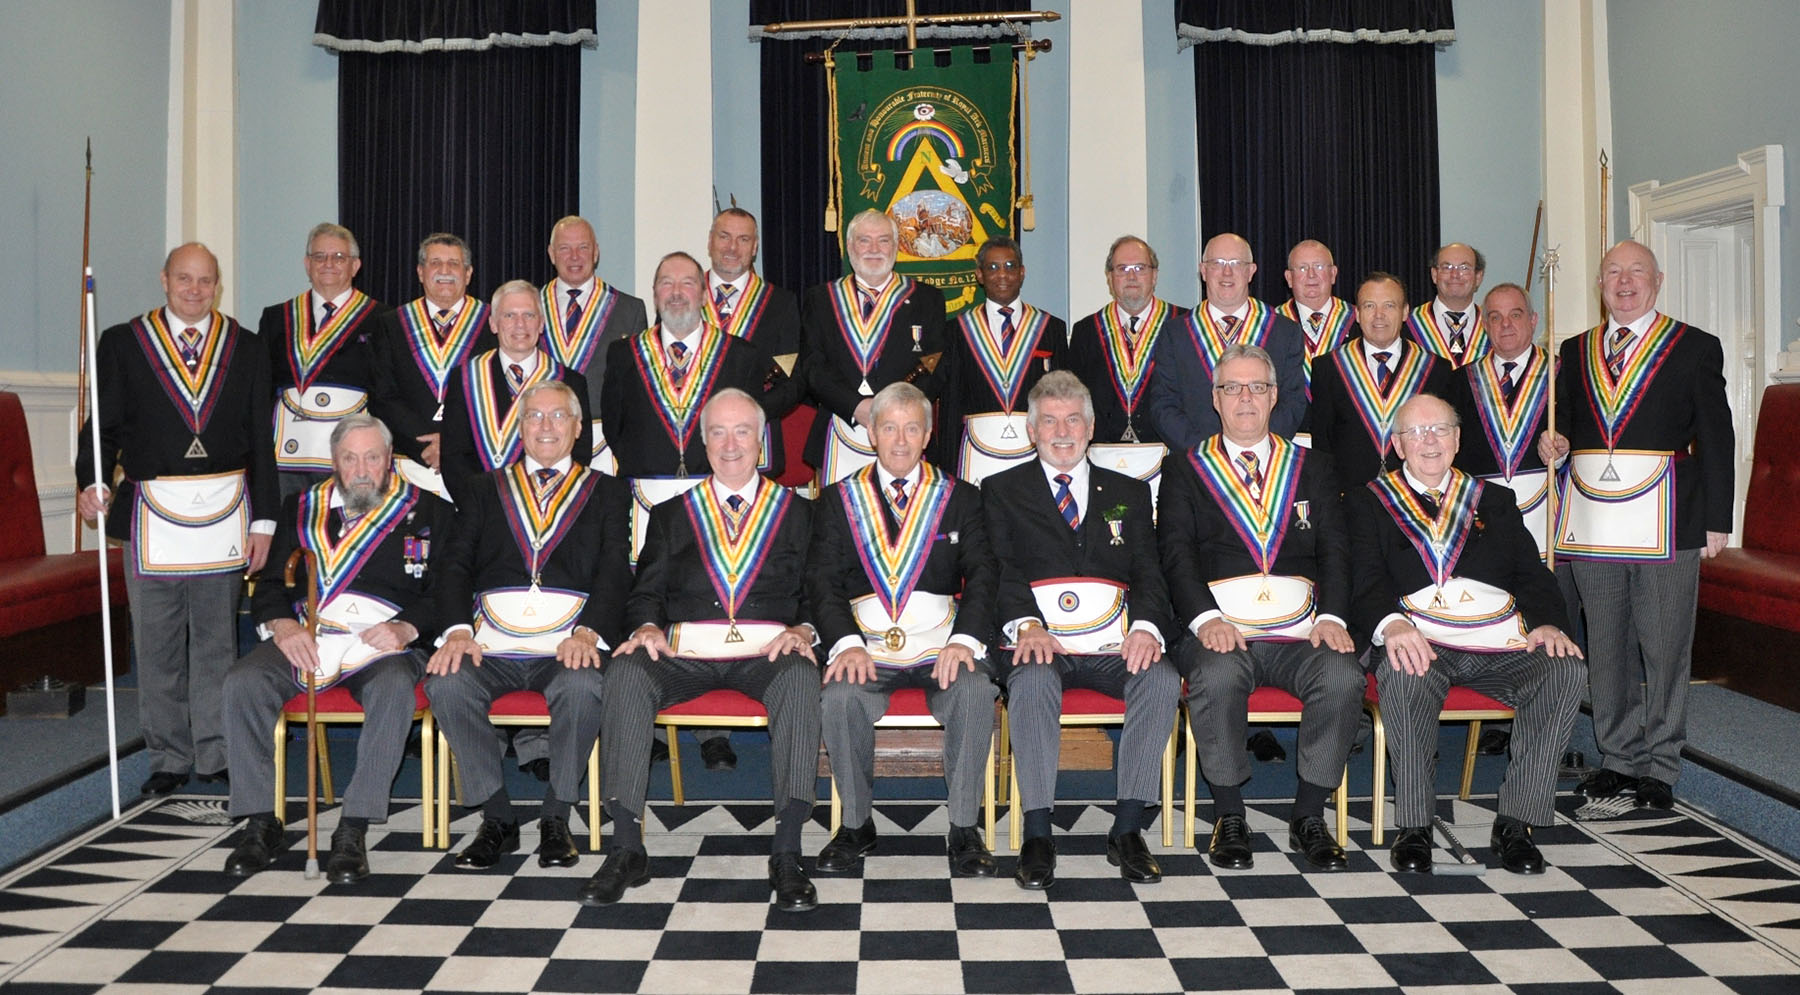 An Executive visit to Welcome Lodge